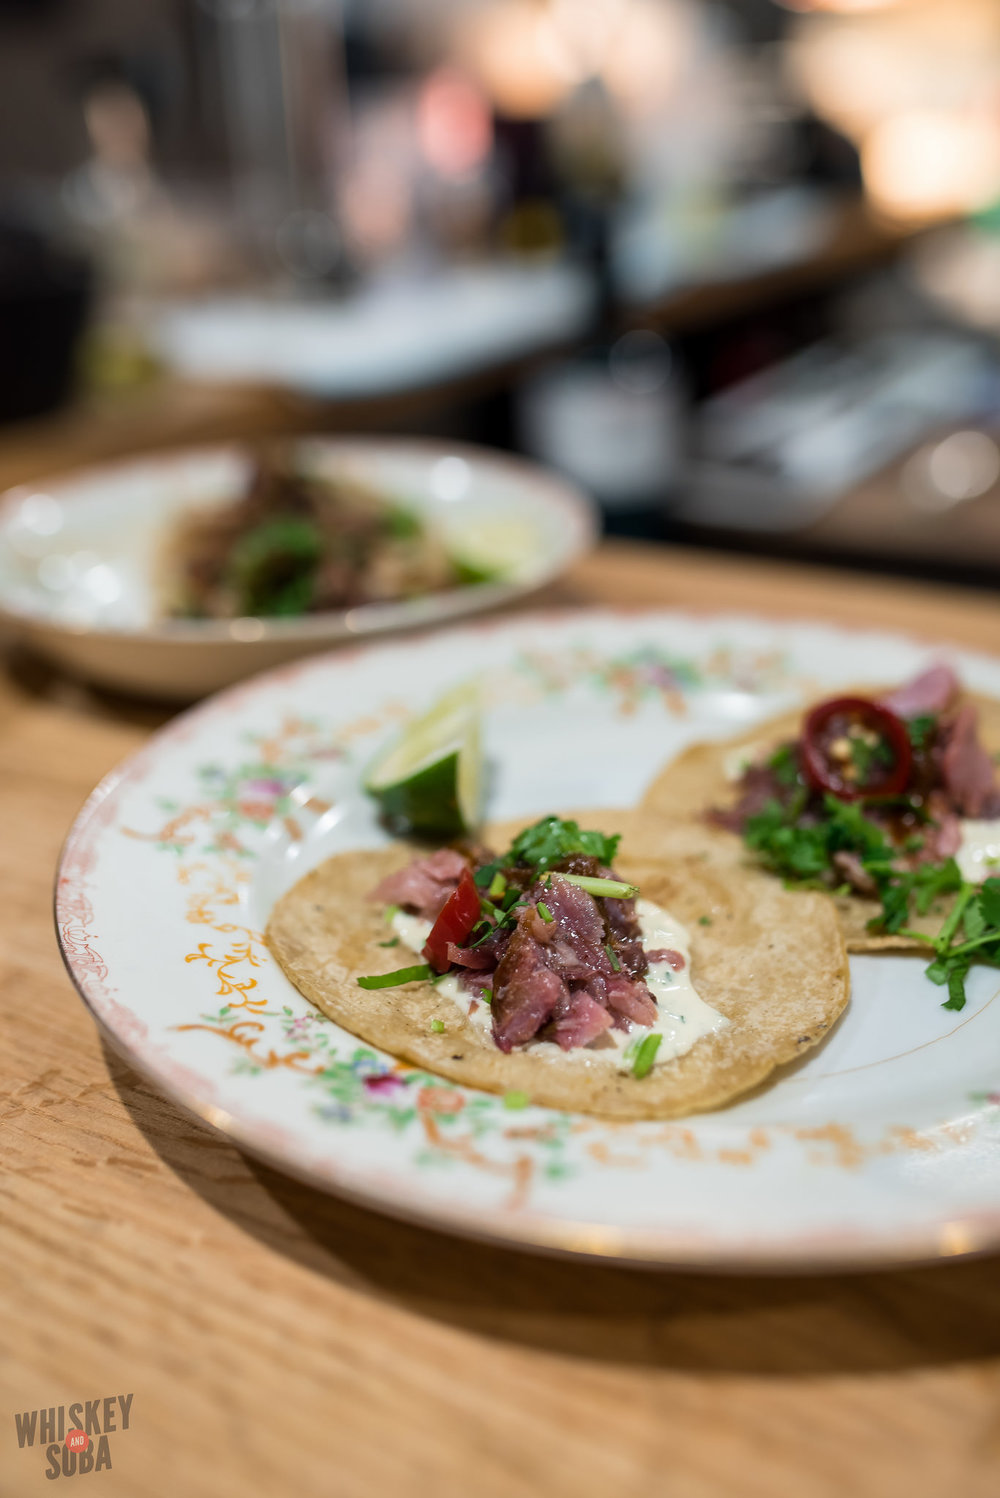 Smoked Tuna Tacos at Publico